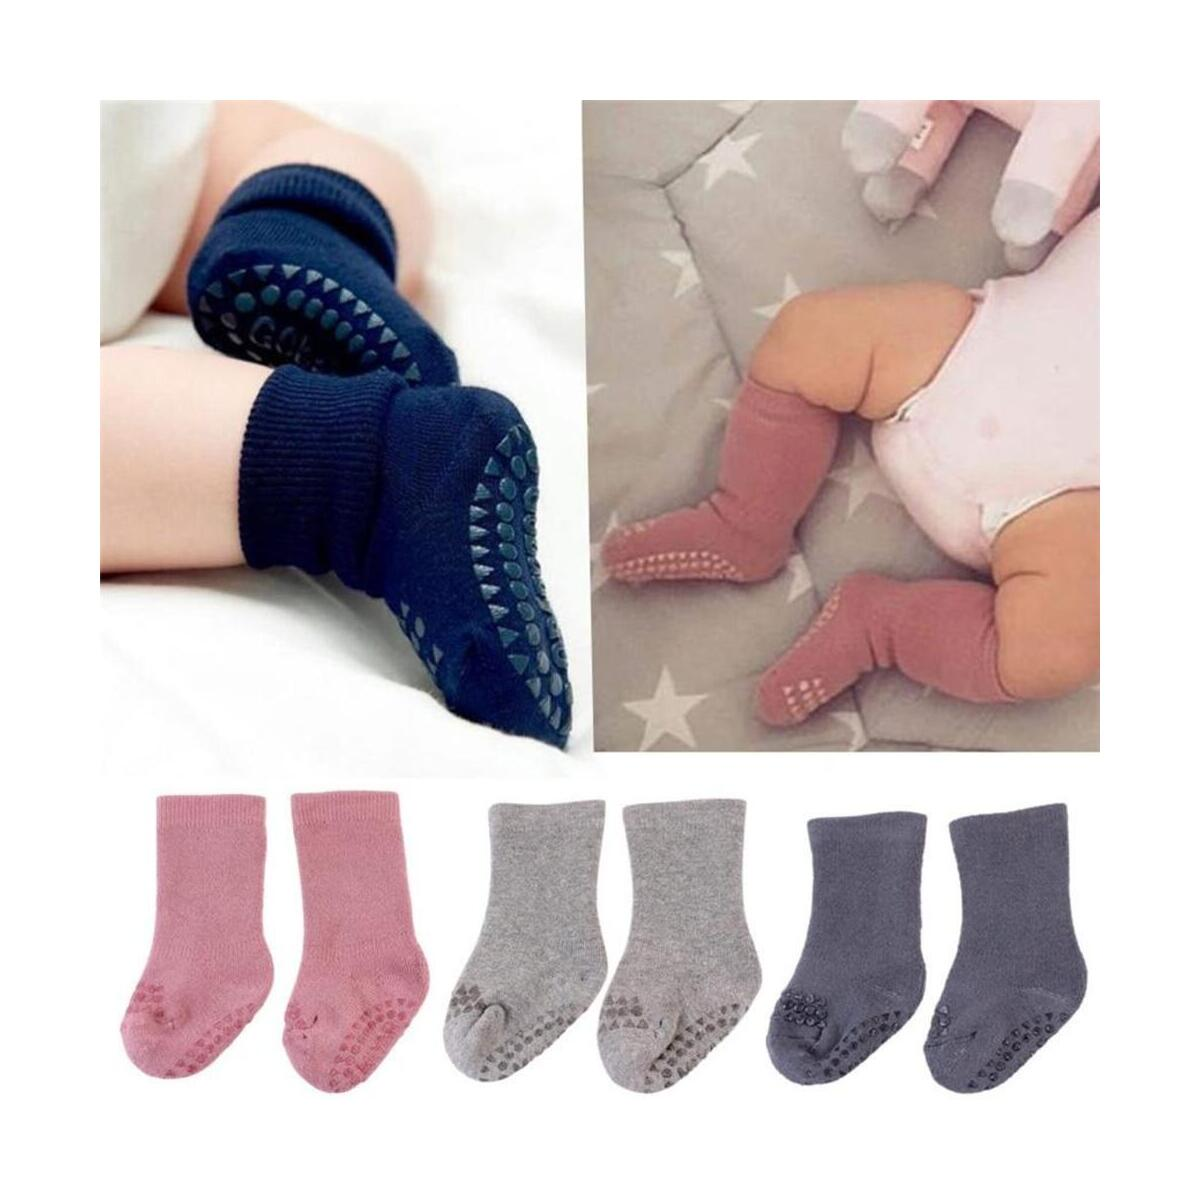 Infant Silica Gel Cotton Baby Non-slip Kids Girls Toddlers Socks